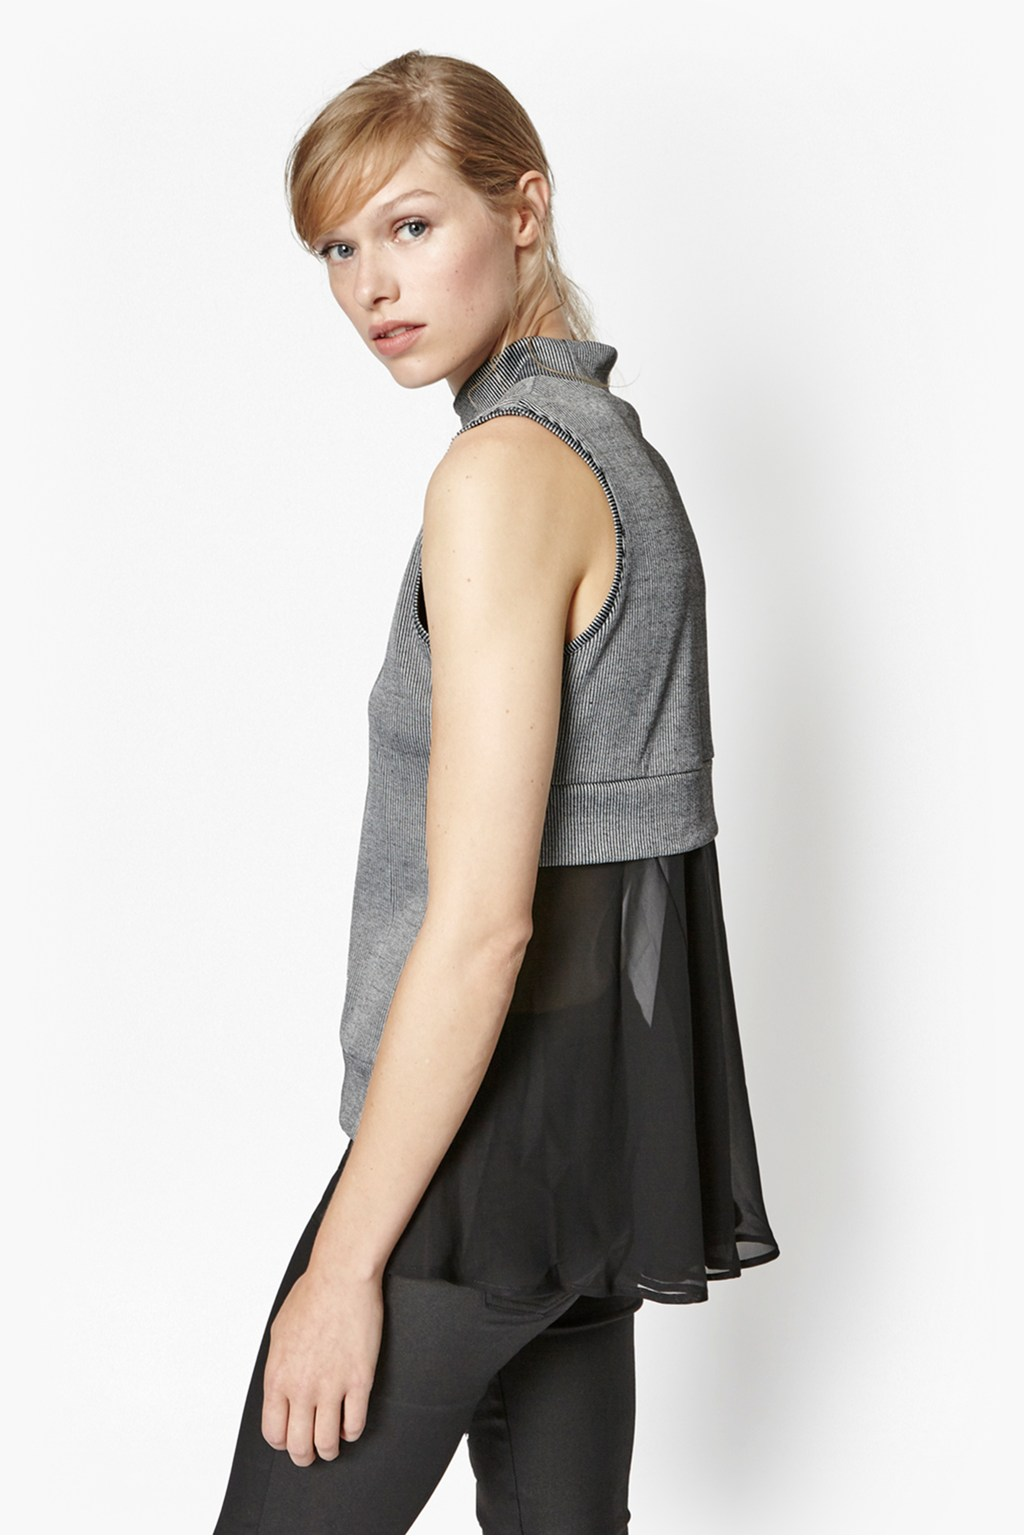 Rachael Layered High Neck Top